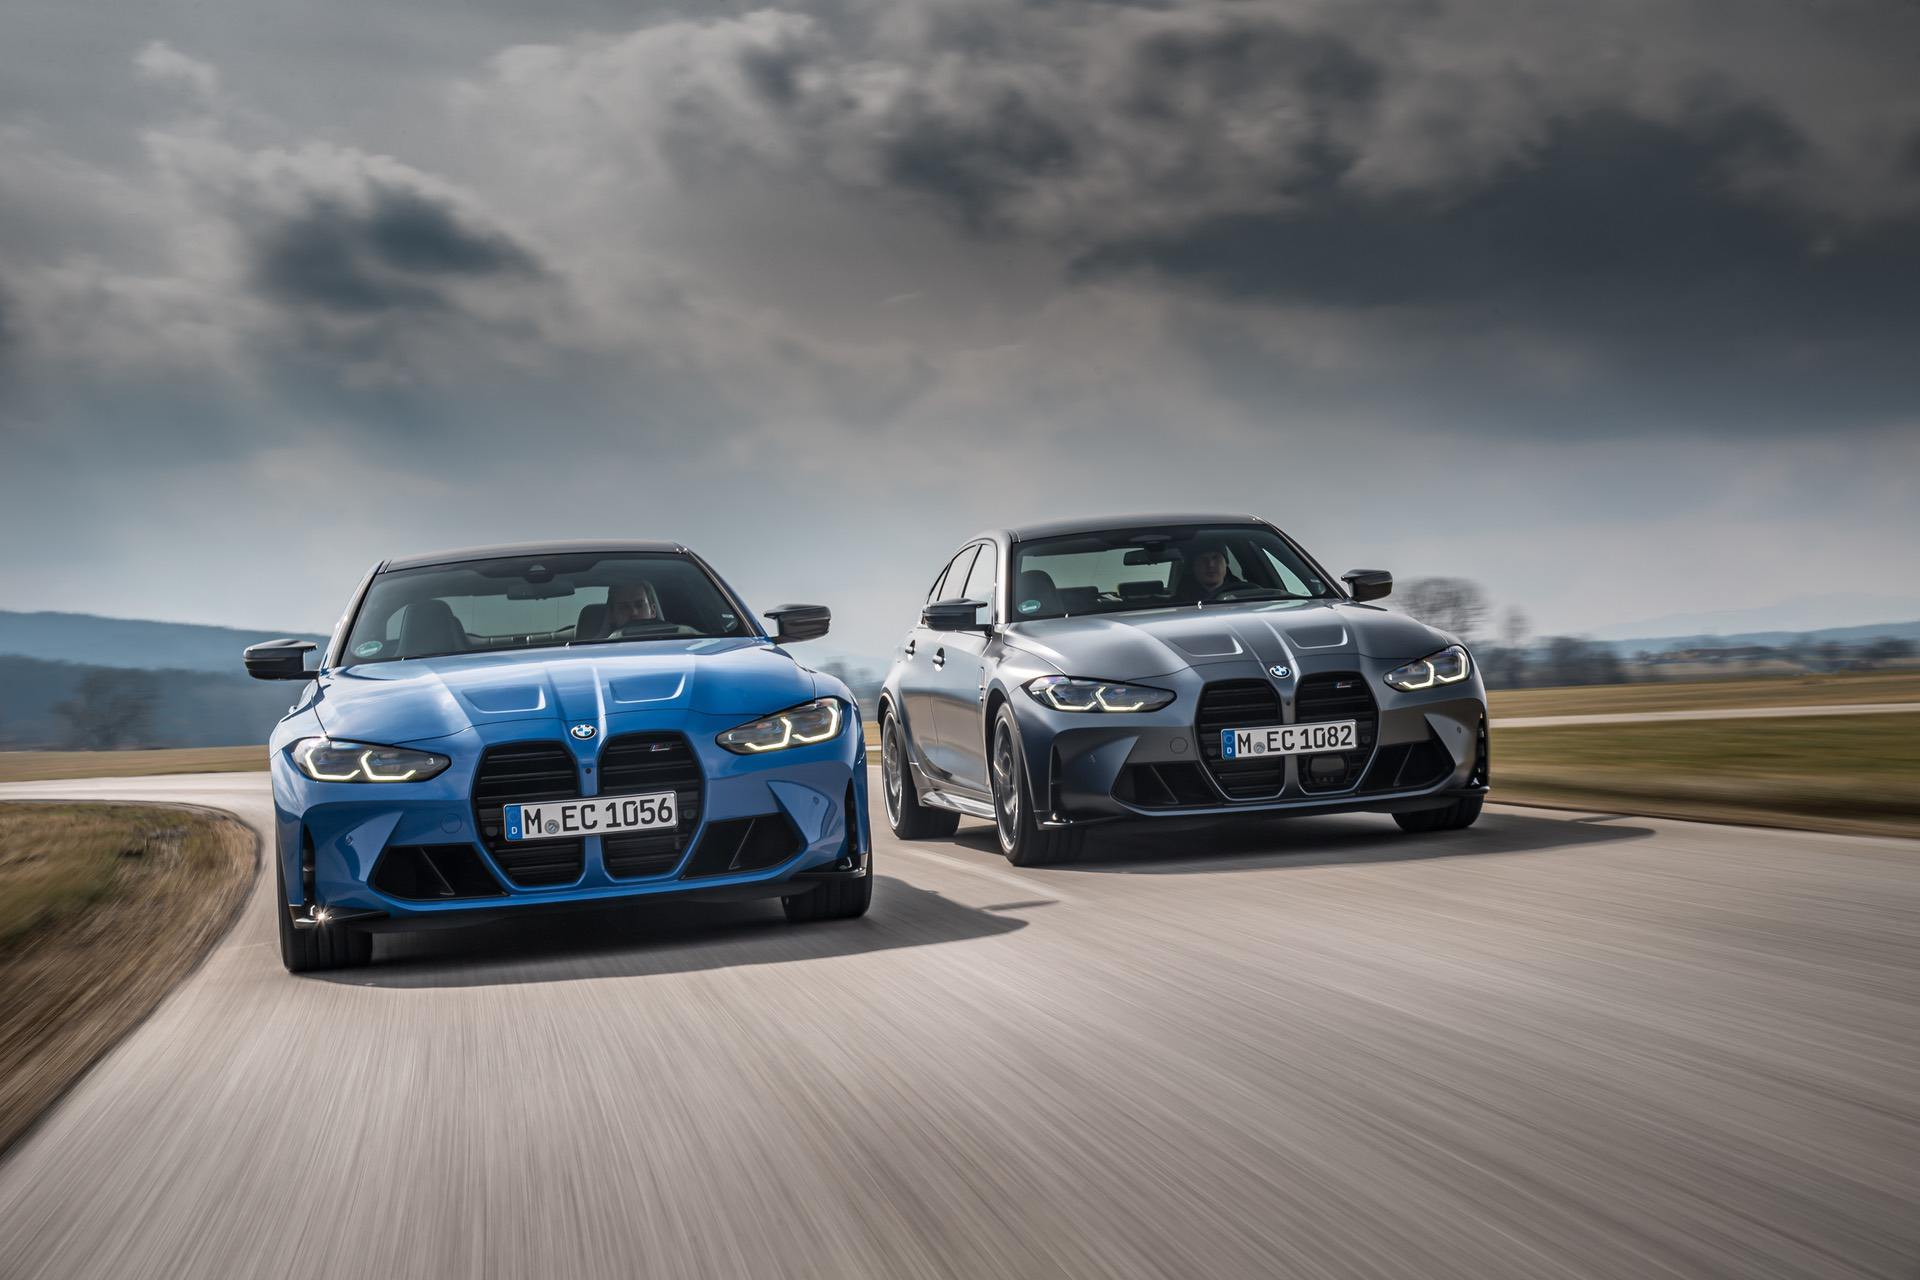 BMW M3 xDrive and BMW M4 xDrive — U.S. Pricing and Specs Revealed